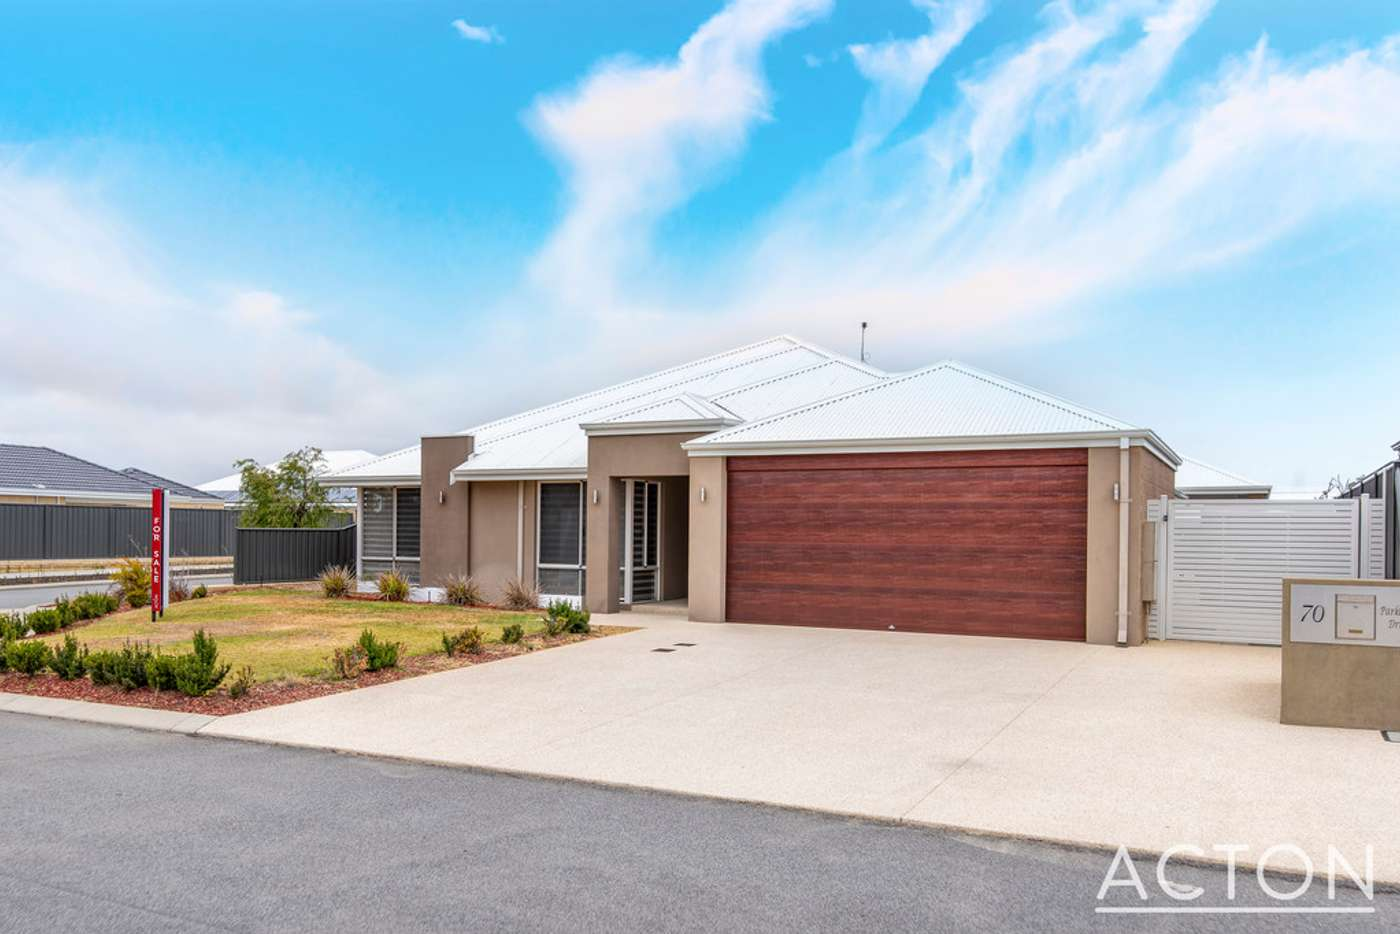 Main view of Homely house listing, 70 Parkland Drive, Yanchep WA 6035